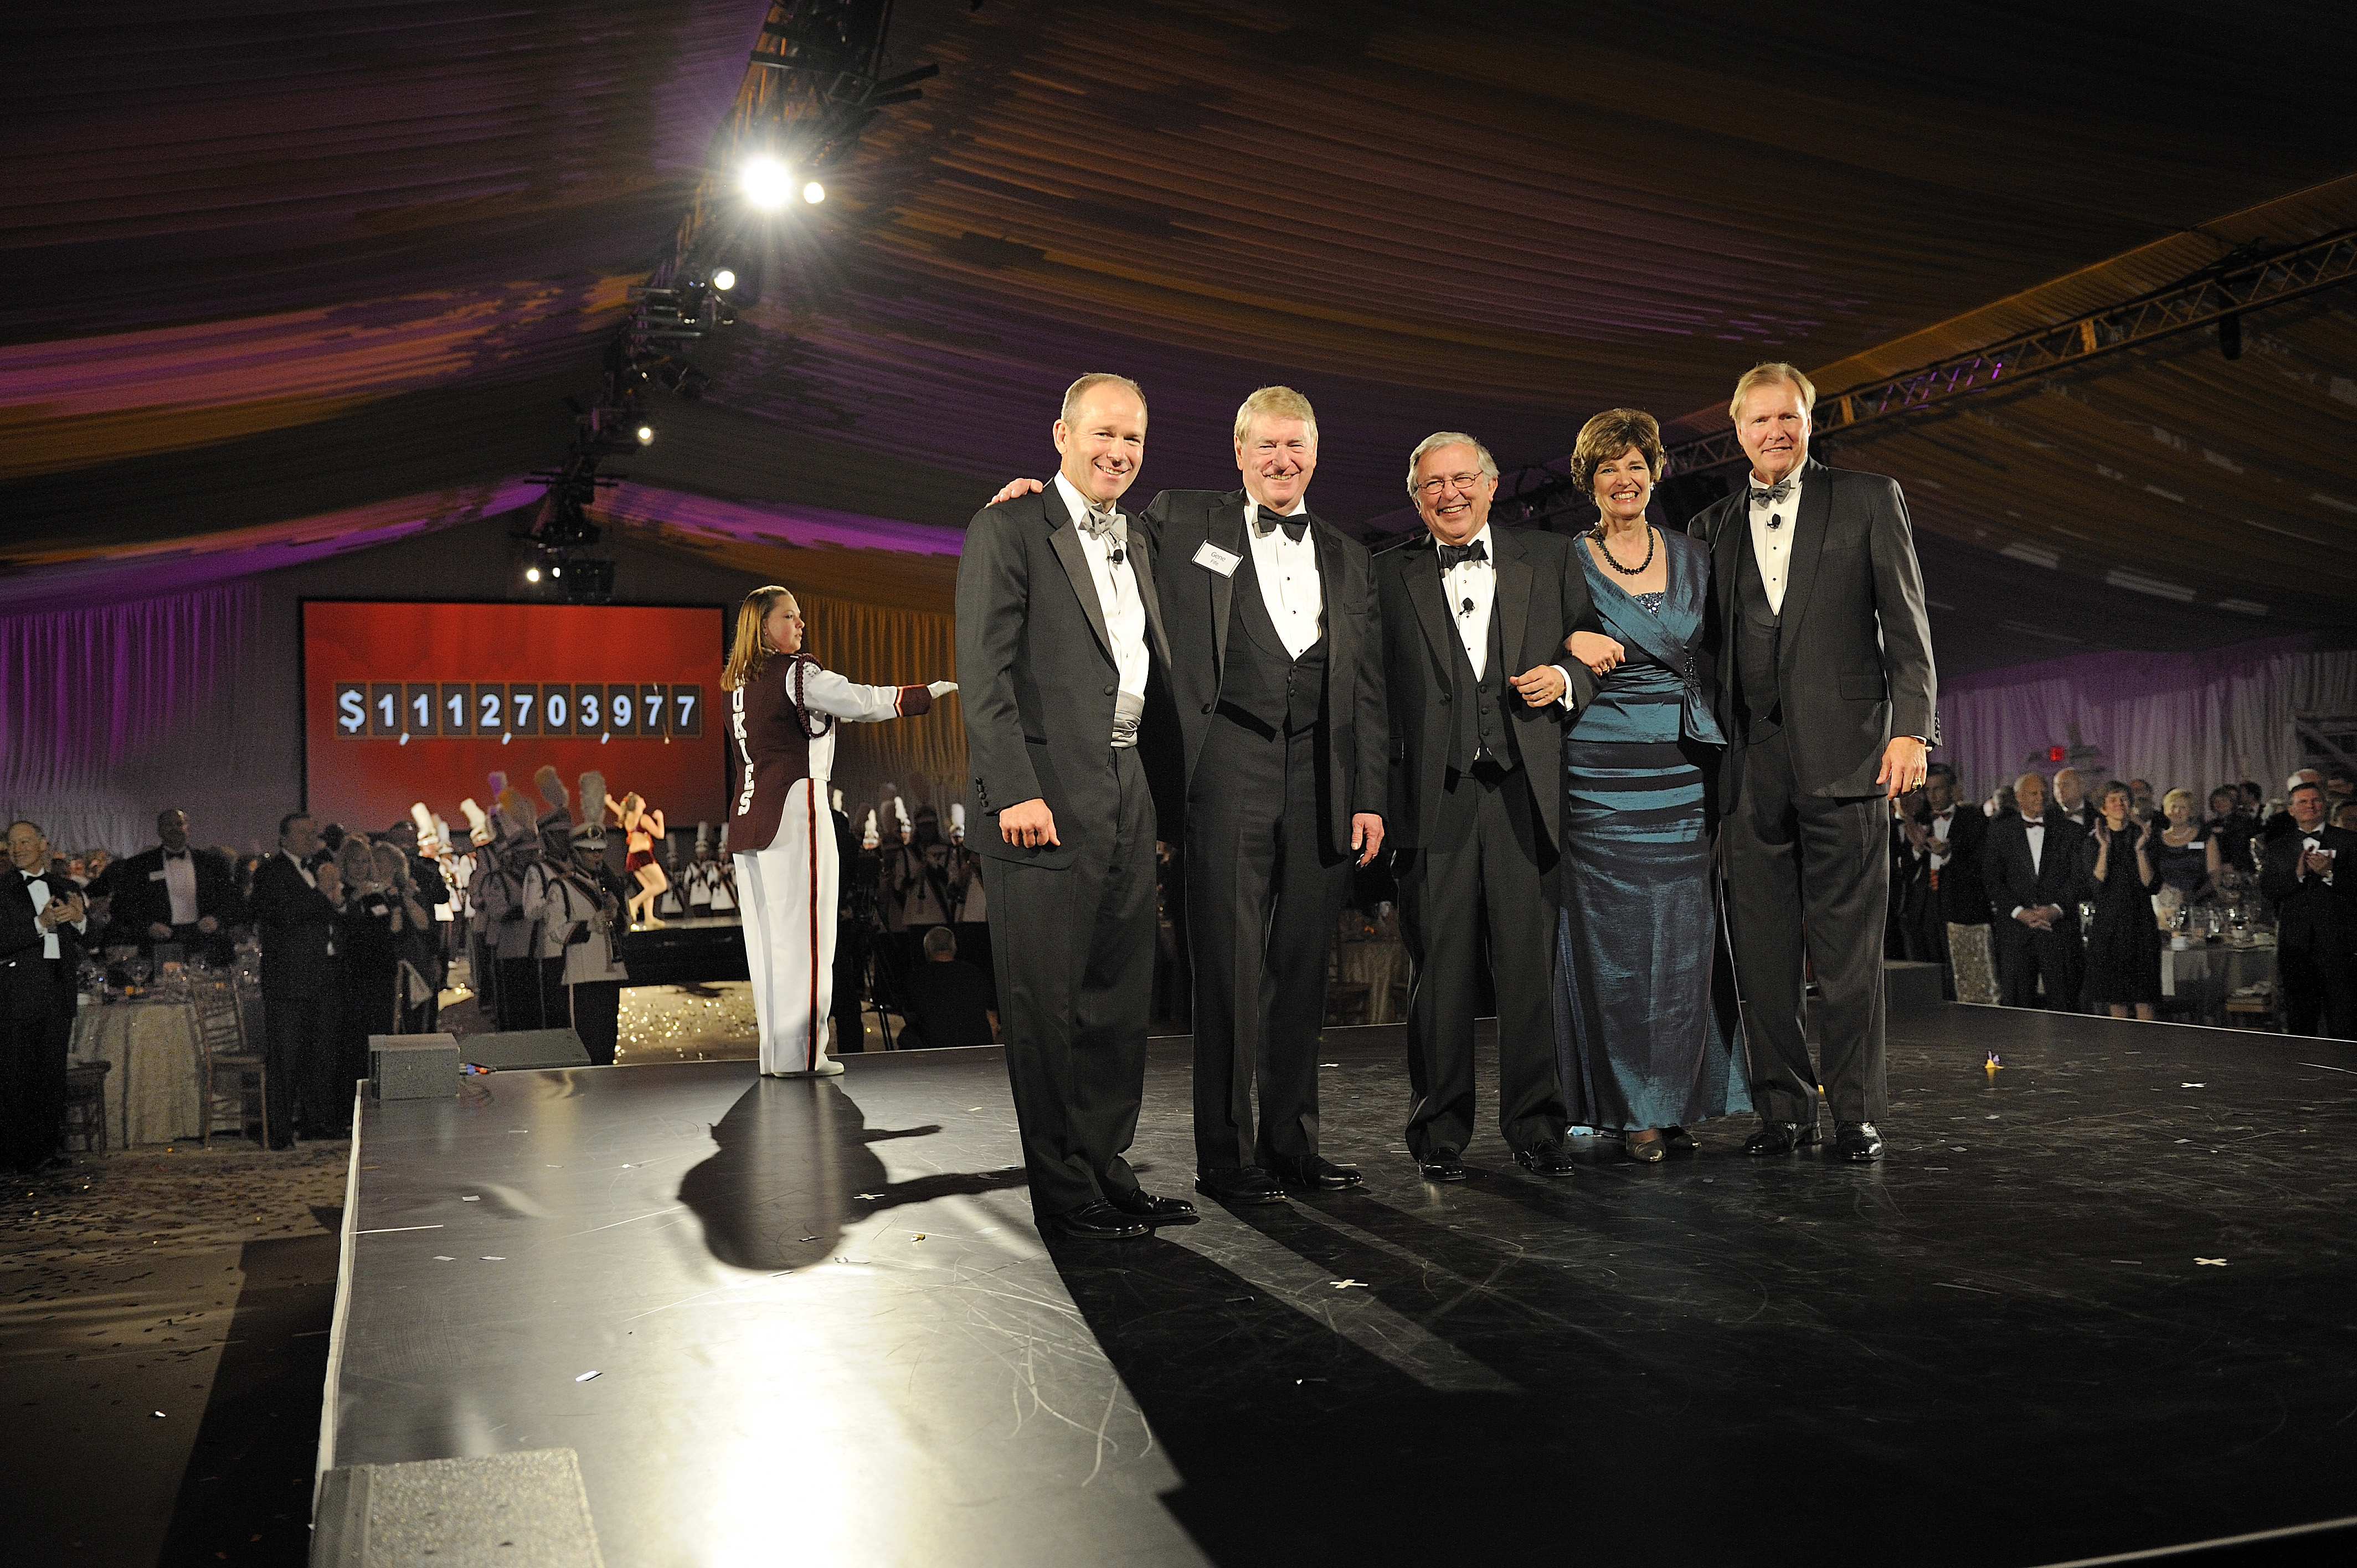 (From left) David Calhoun, Gene Fife, Virginia Tech President Charles W. Steger, Elizabeth Flanagan, and John Lawson appear before the screen that revealed the total amount raised during The Campaign for Virginia Tech: Invent the Future.